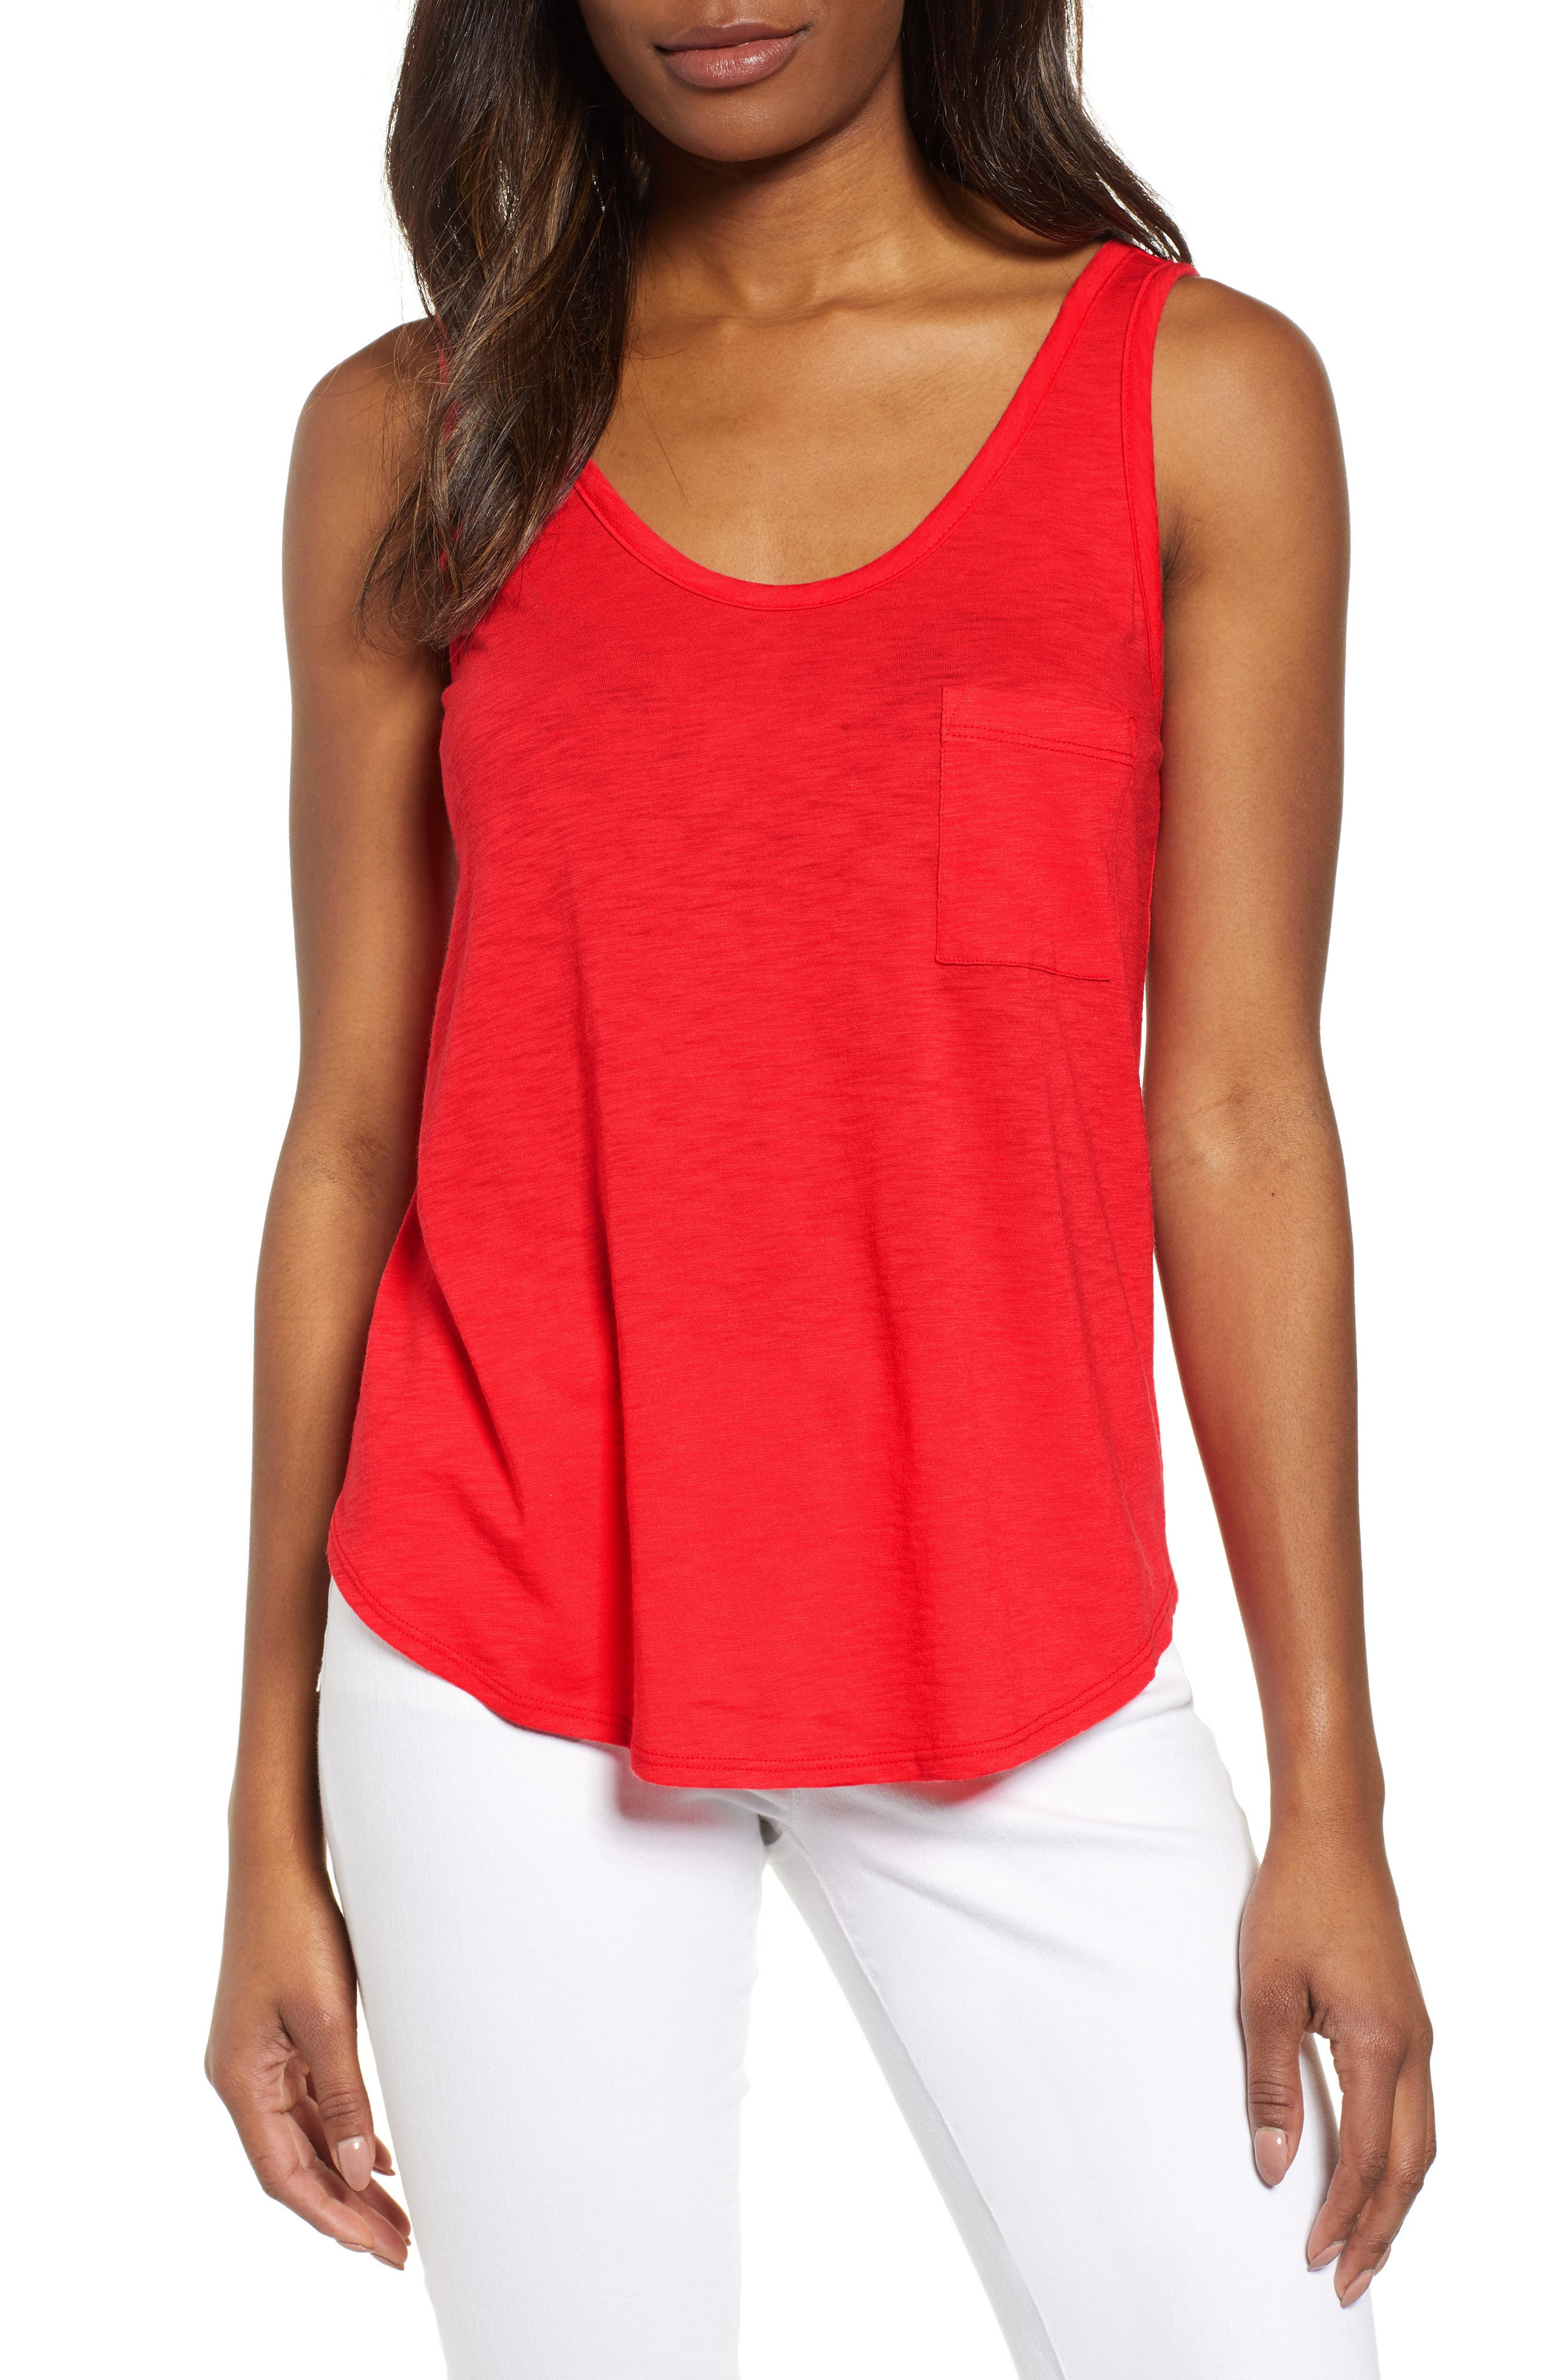 x Hi Sugarplum! Summerland Scooped Neck Pocket Tank Top,                             Main thumbnail 1, color,                             HIBISCUS